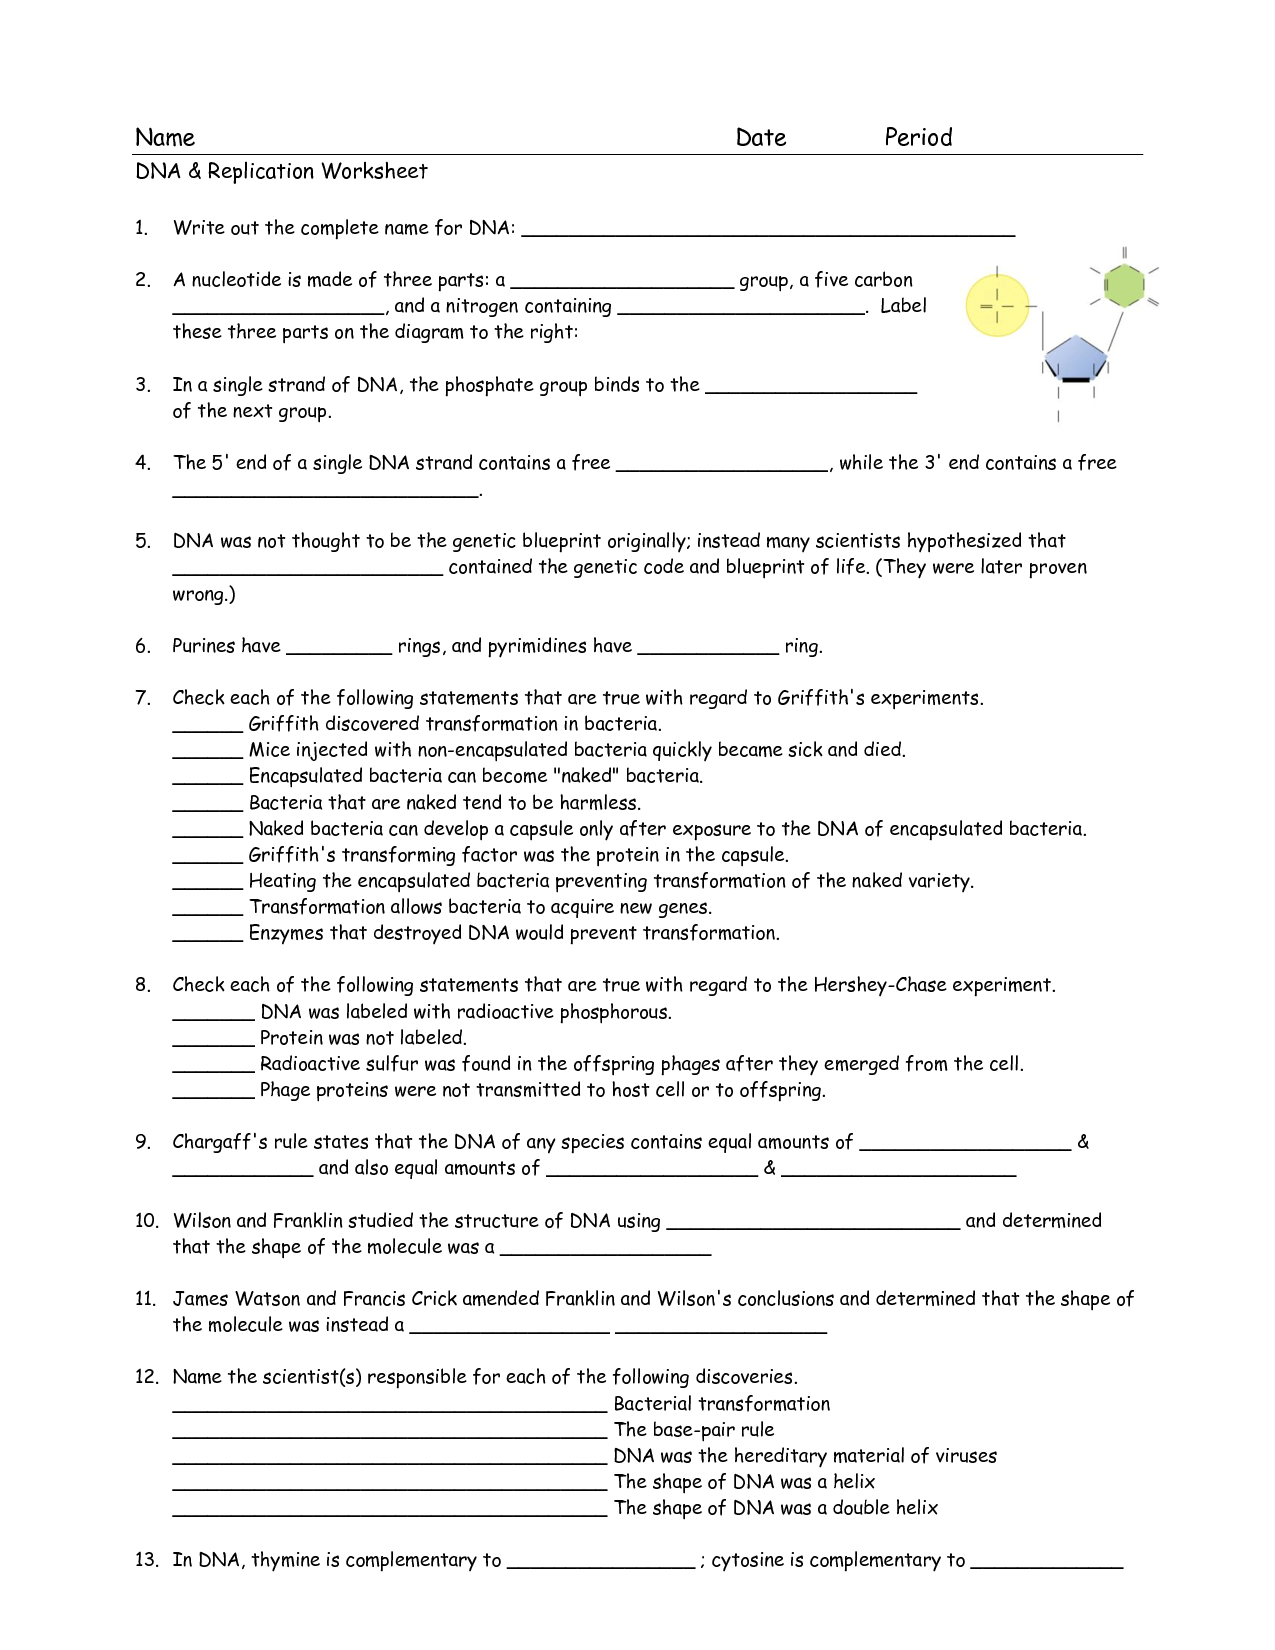 Chapter 11 Dna And Genes Worksheet Answers